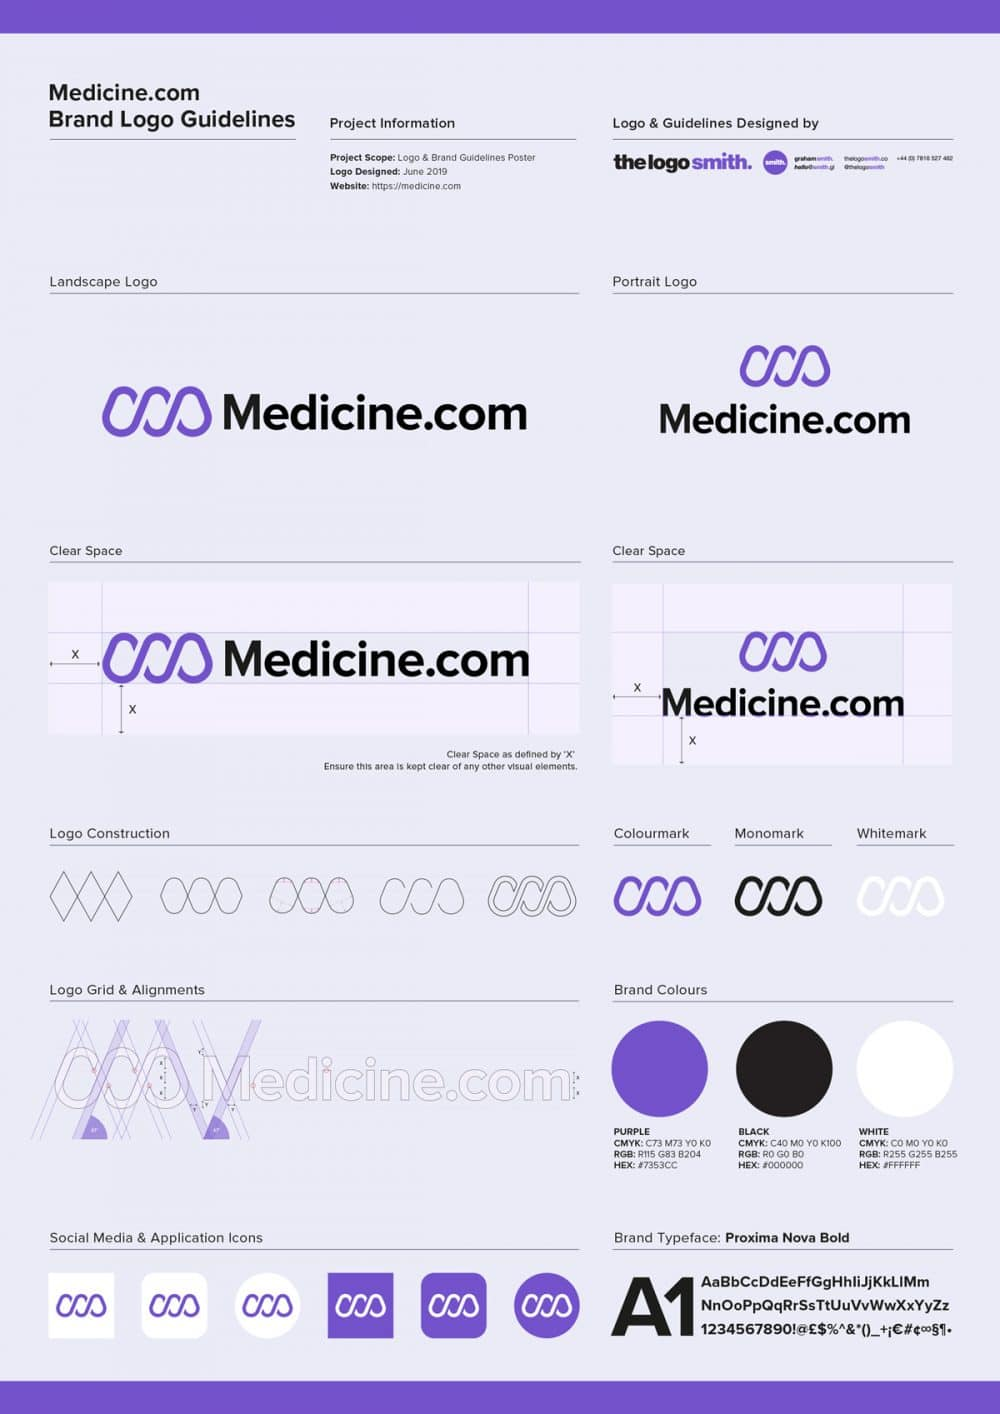 Brand Logo Guidelines Poster Designed by Freelance Logo Designer The Logo Smith